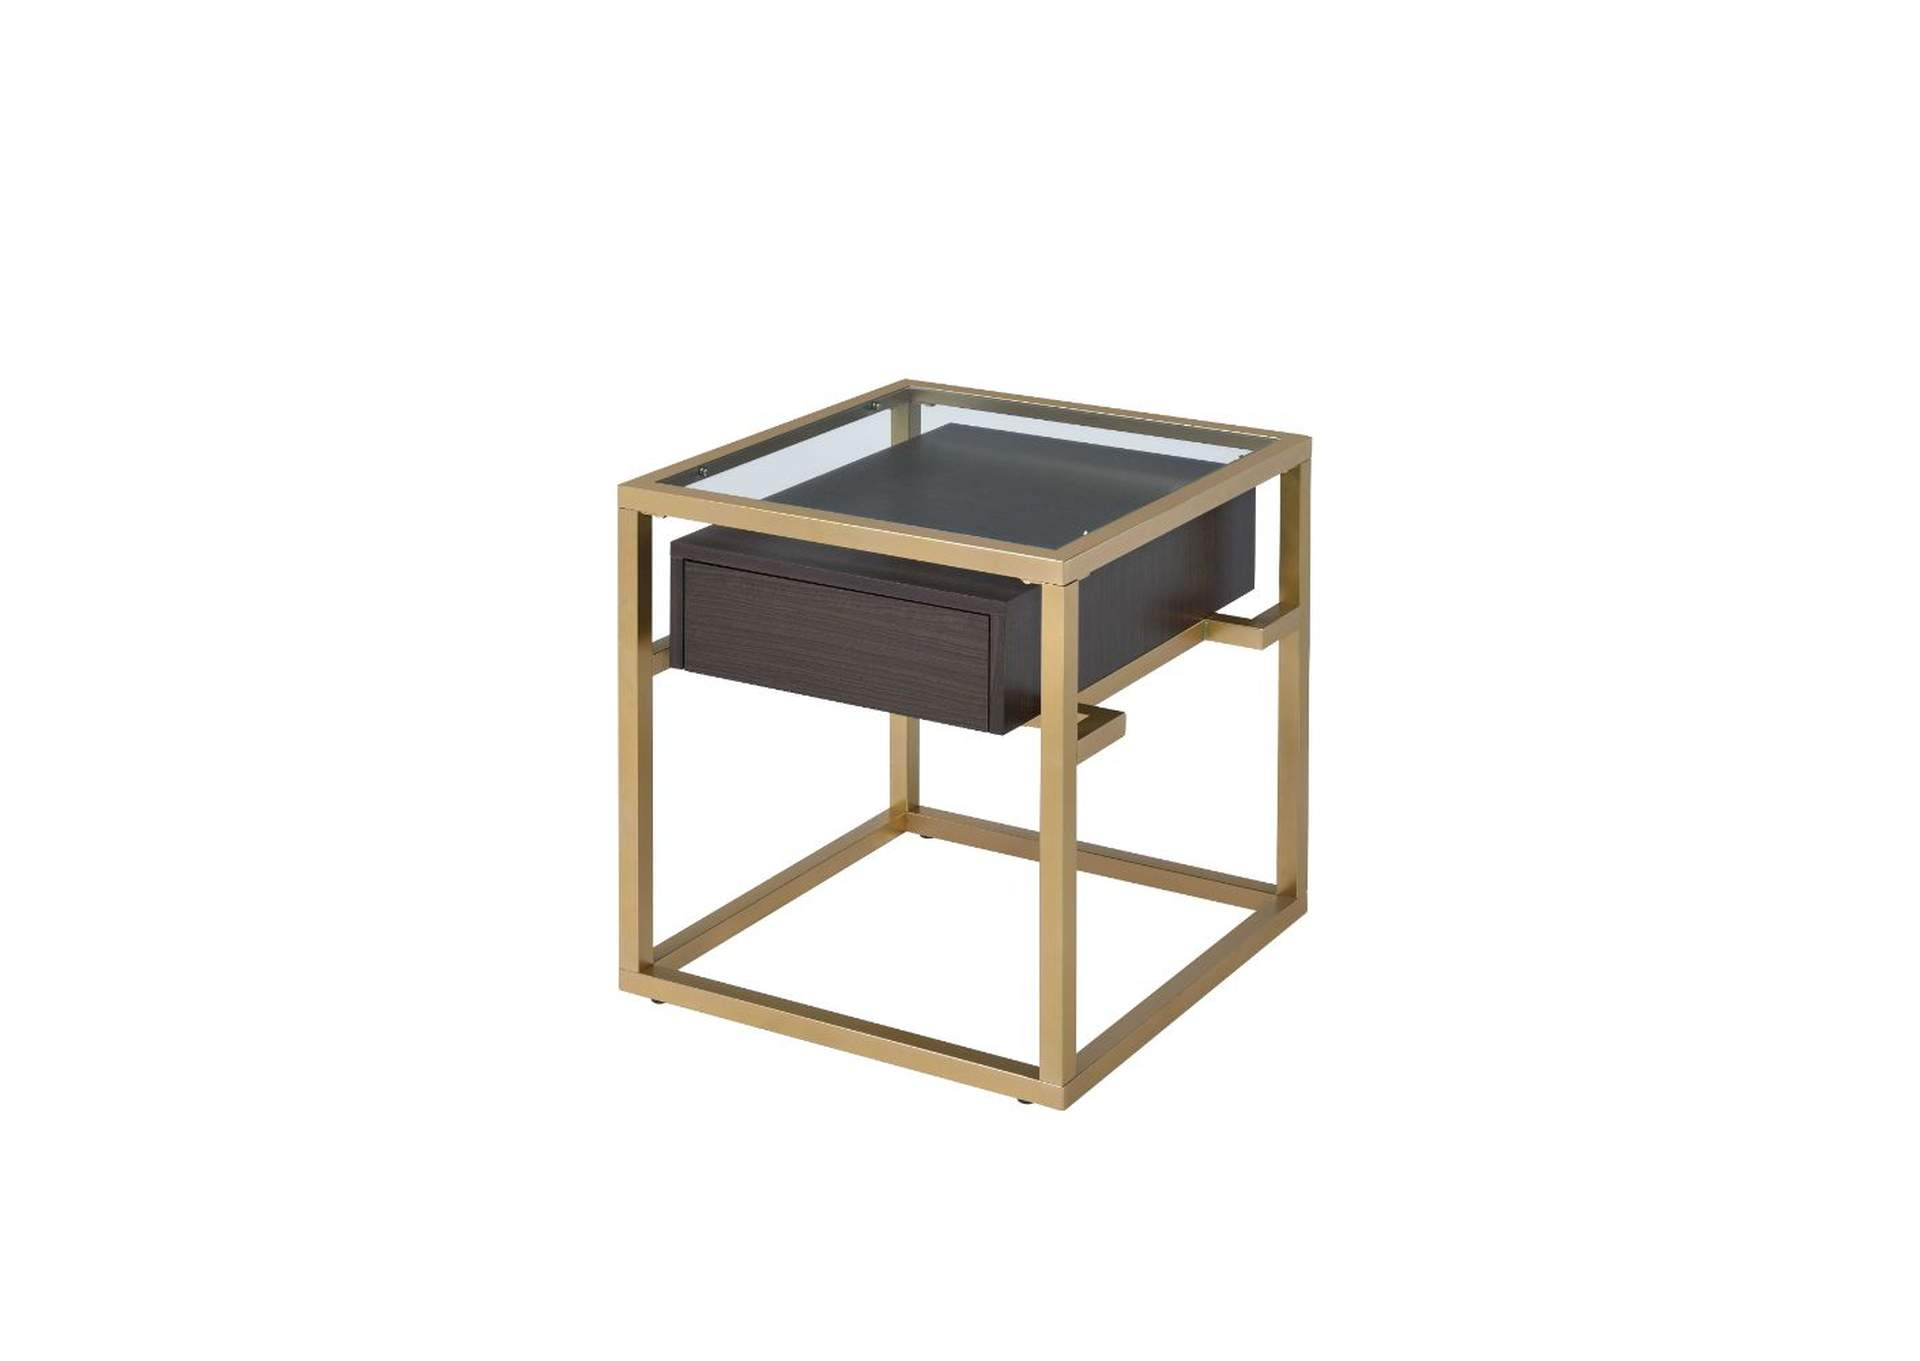 Yumia Gold & Clear Glass End Table,Acme